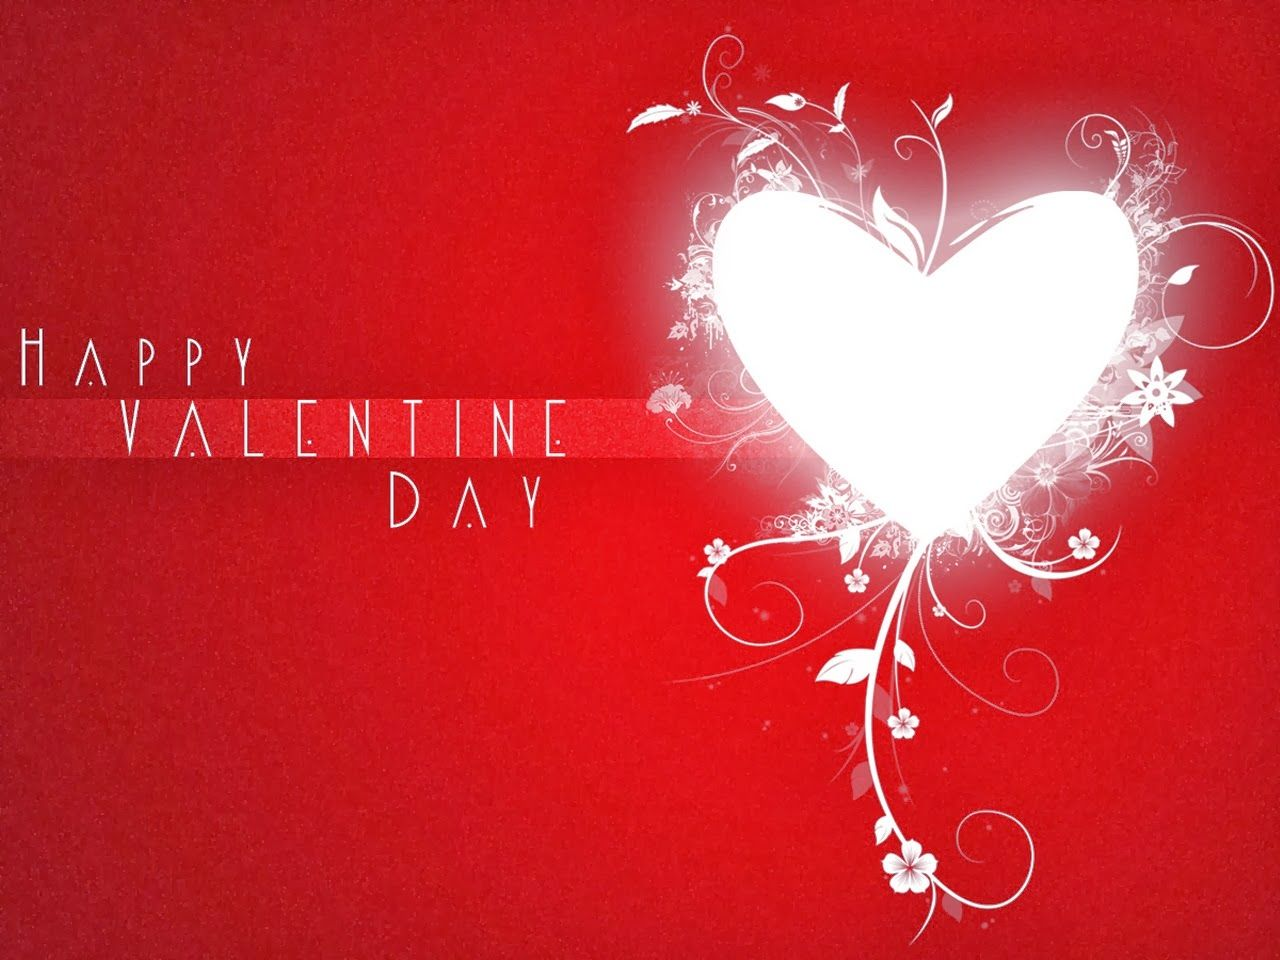 Valentines Day 2019 Images Happy Valentines Day Pictures Cute Valentines Pics Valentines Day Photos Valentines Day Wallpapers Valentines Heart Shape Cards